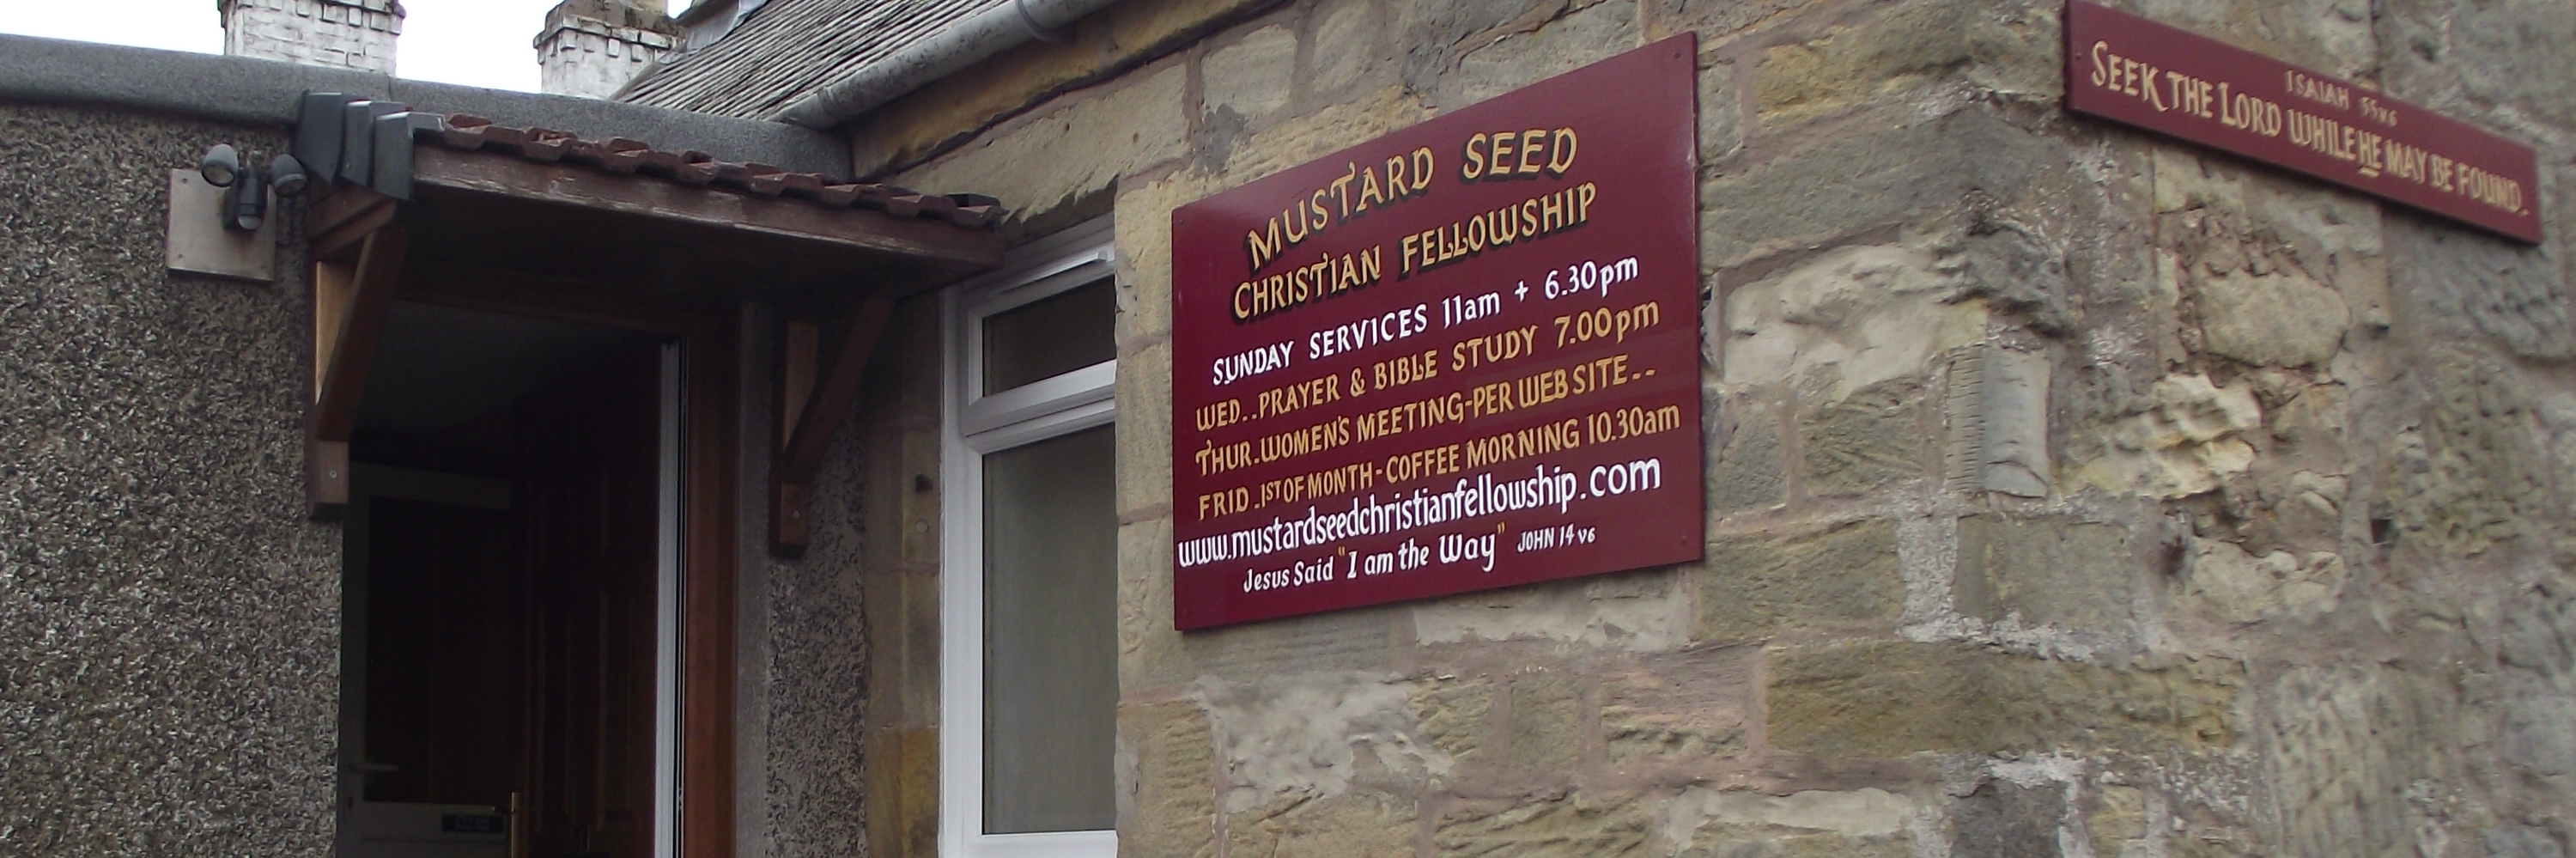 Mustard Seed Christian Fellowship